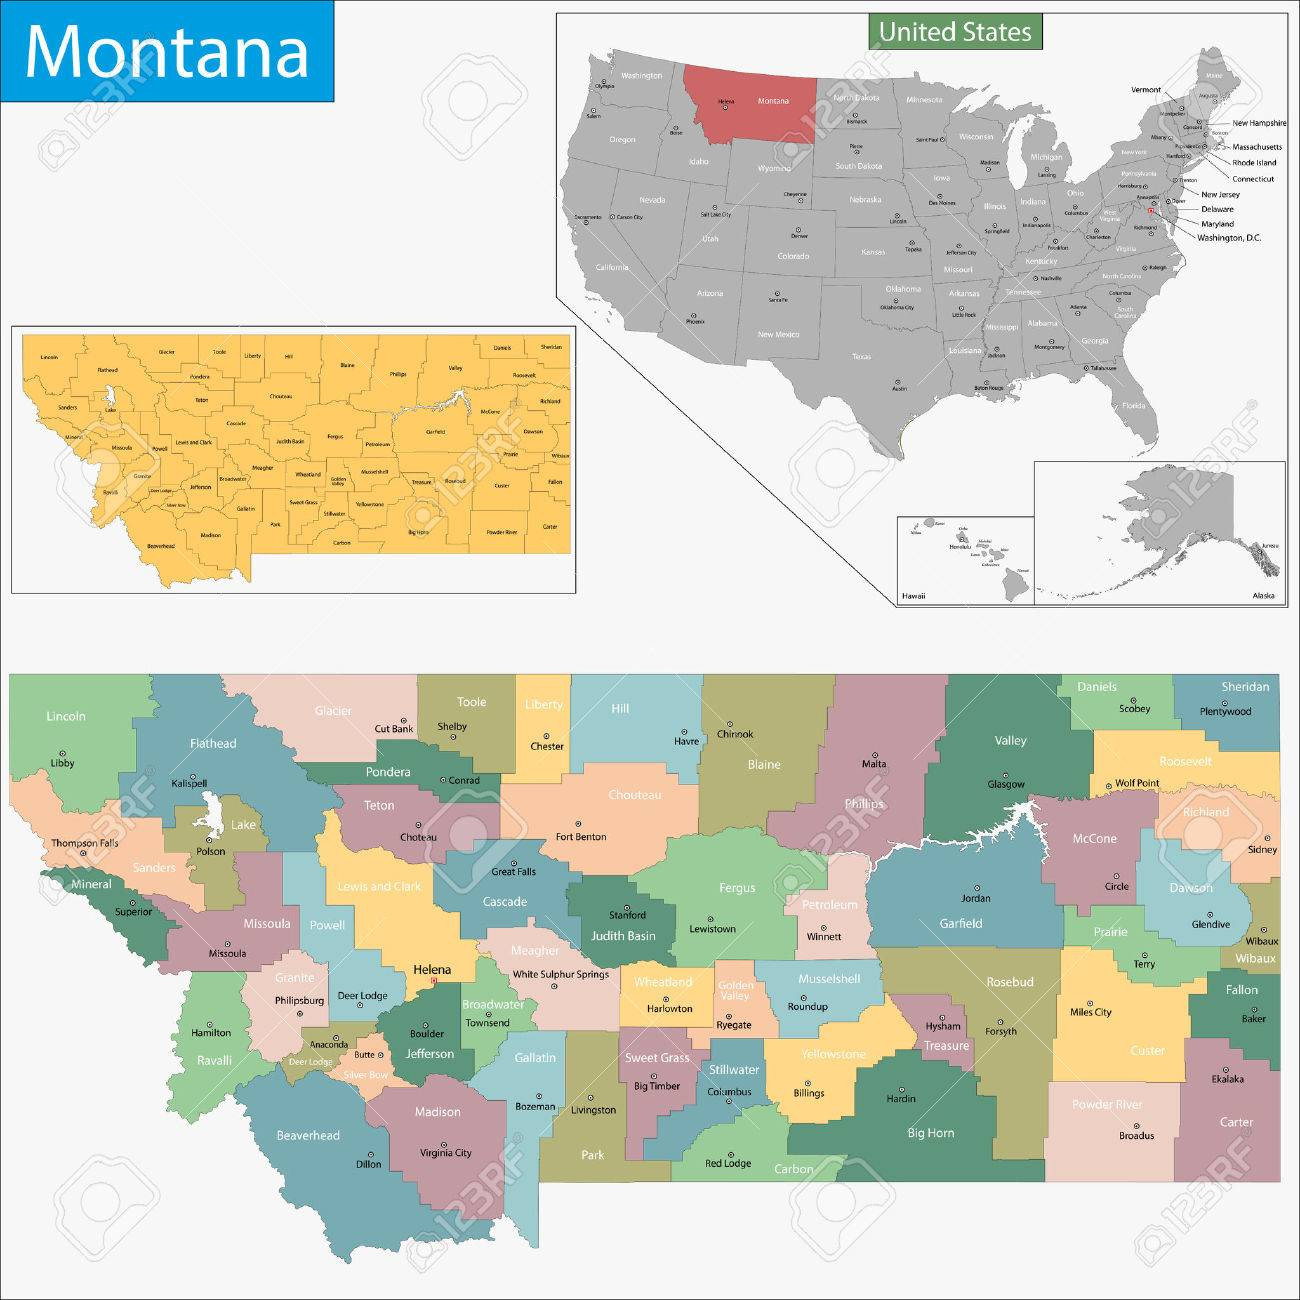 Montana State Map With Counties.Map Of Montana State Designed In Illustration With The Counties